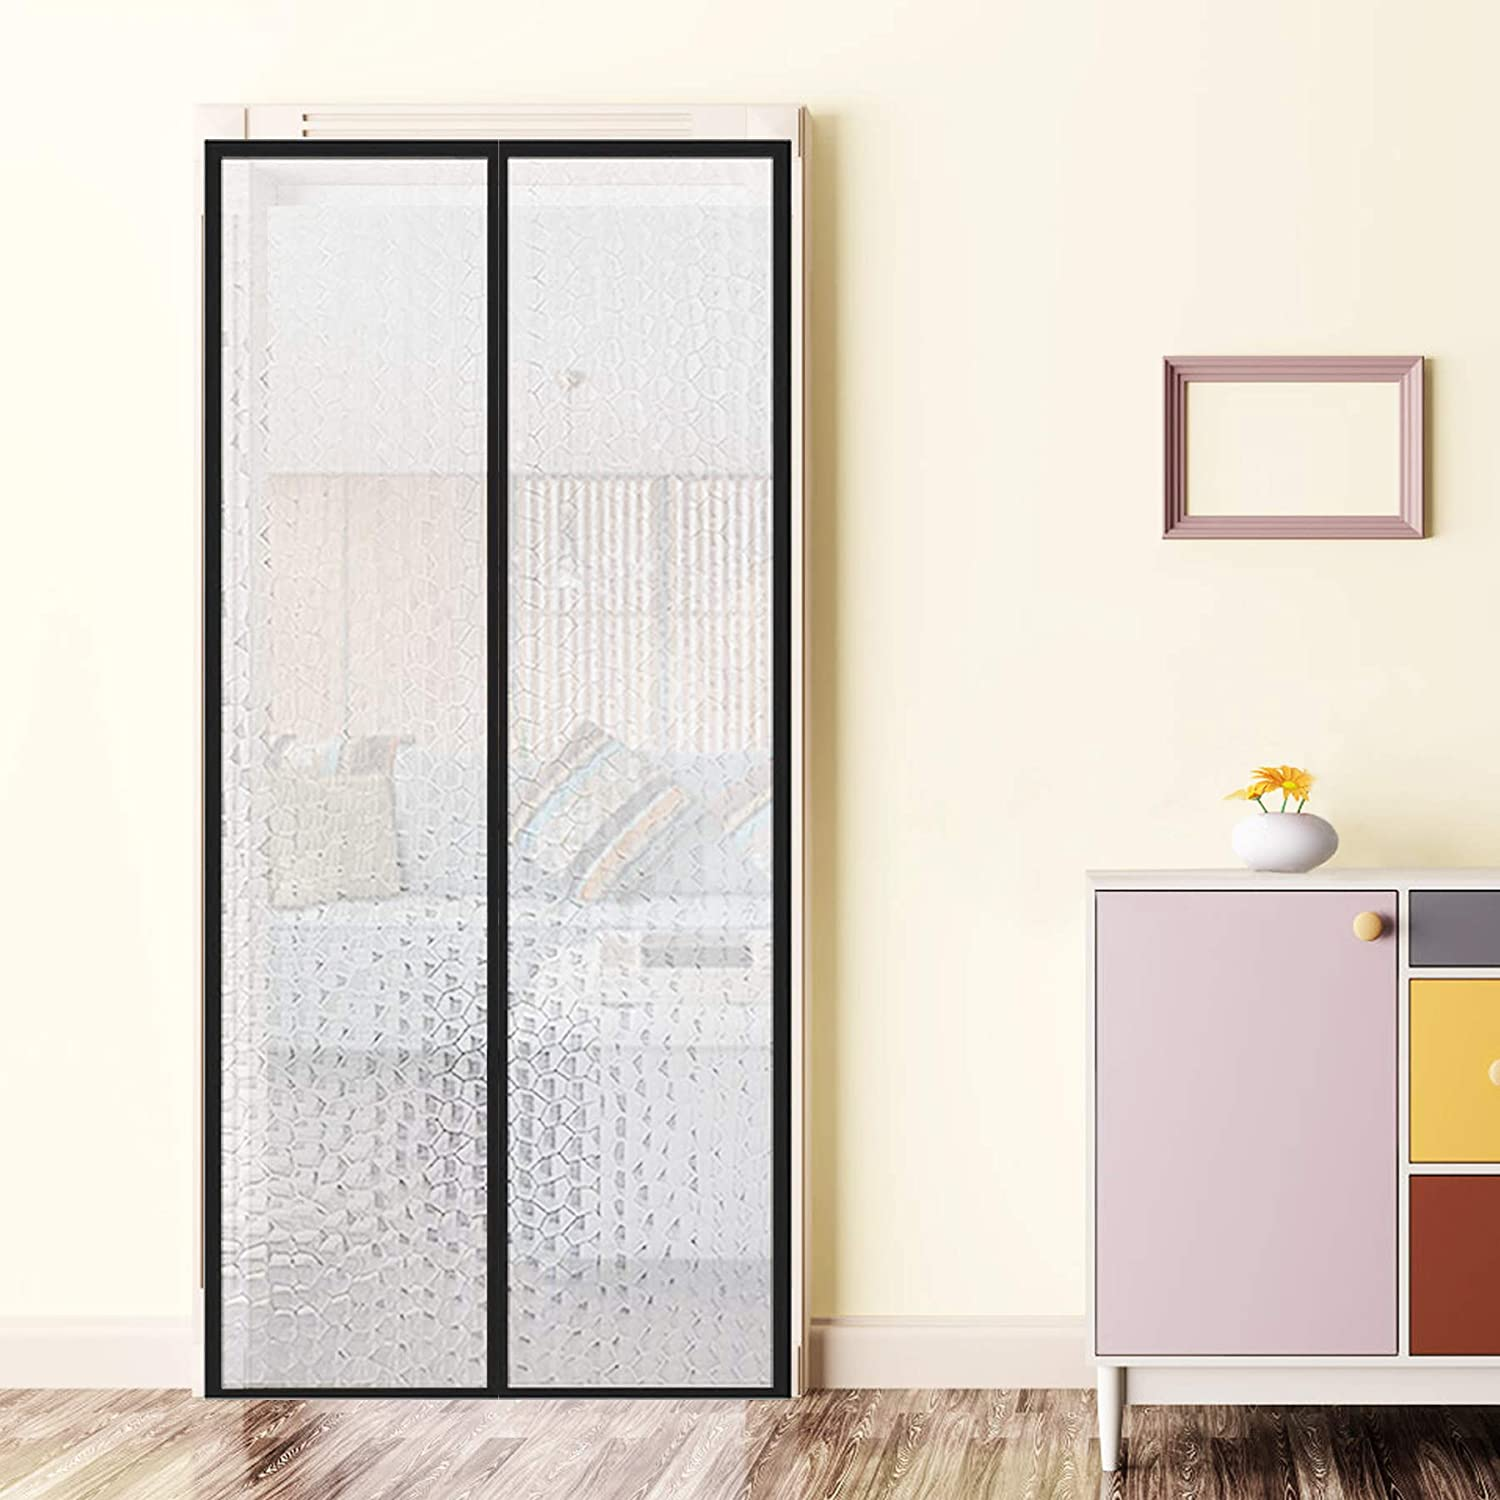 """YUFER Magnetic Thermal Insulated Curtain 36×80, Thermal Screen Door for Air Conditioner Heater Room Home Kitchen Fits Doors Up to 36"""" x 80"""" MAX"""